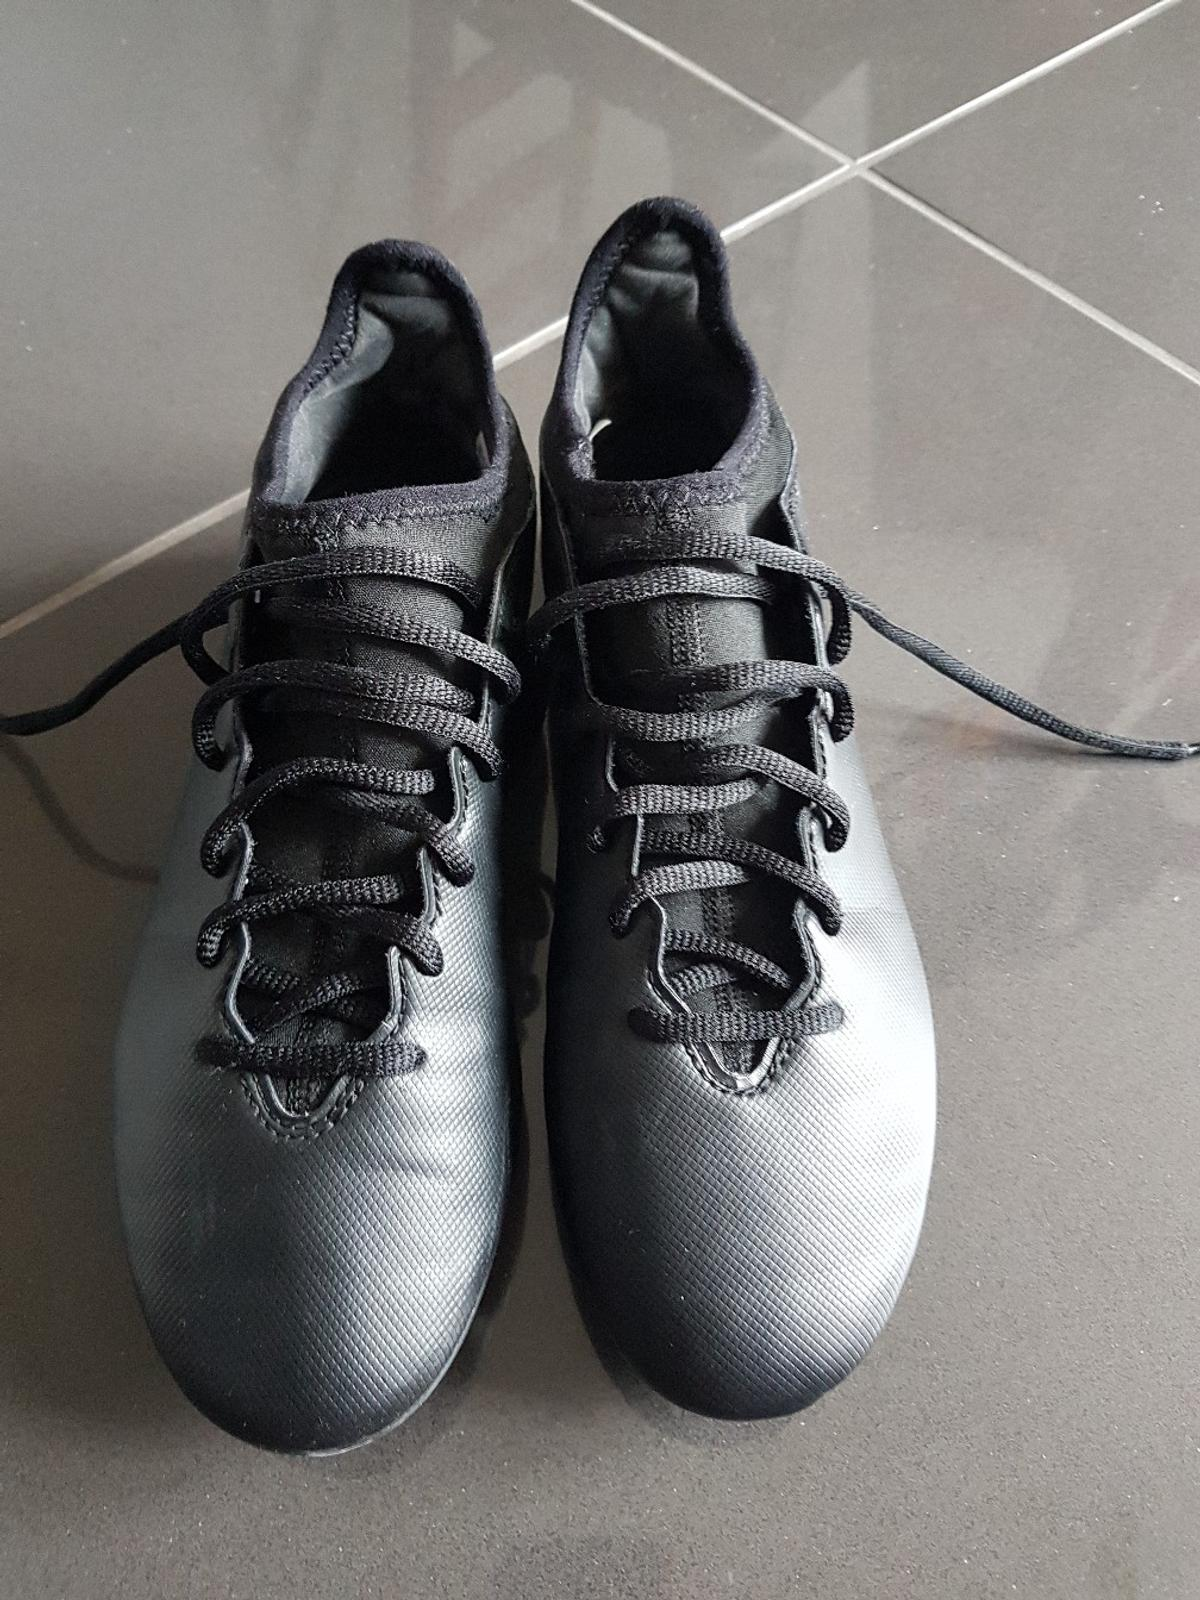 Football boots like new size 5.  Collection from Wixams.